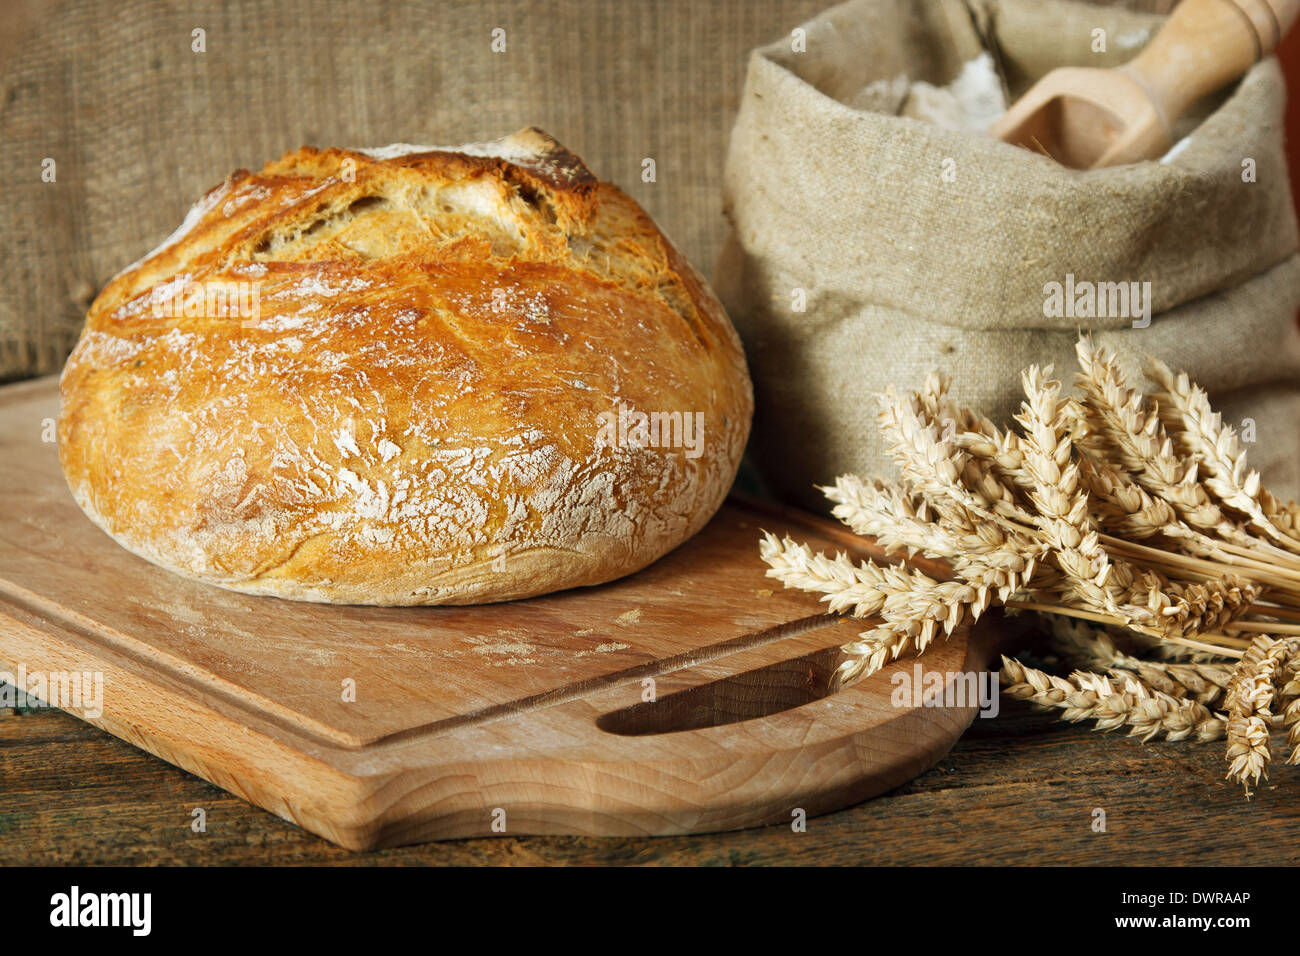 Bread loaf on wooden table - Stock Image